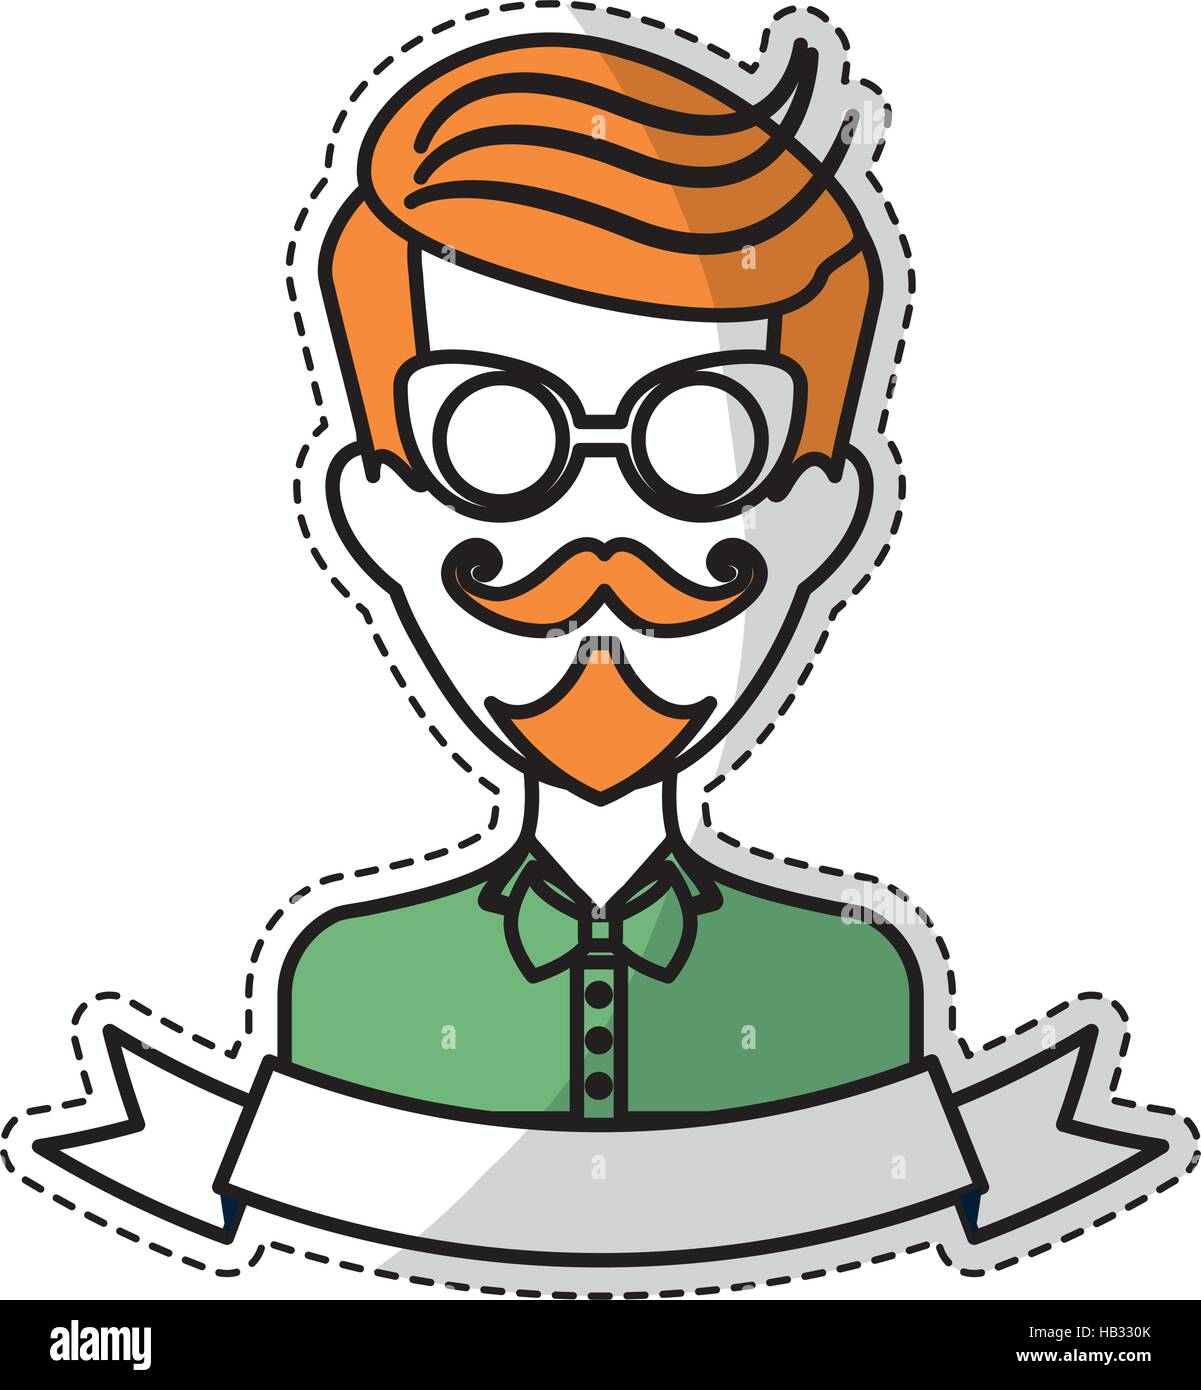 Sticker of man face with mustache and glasses and decorative ribbon over white background hispter style concept colorful design vector illustration